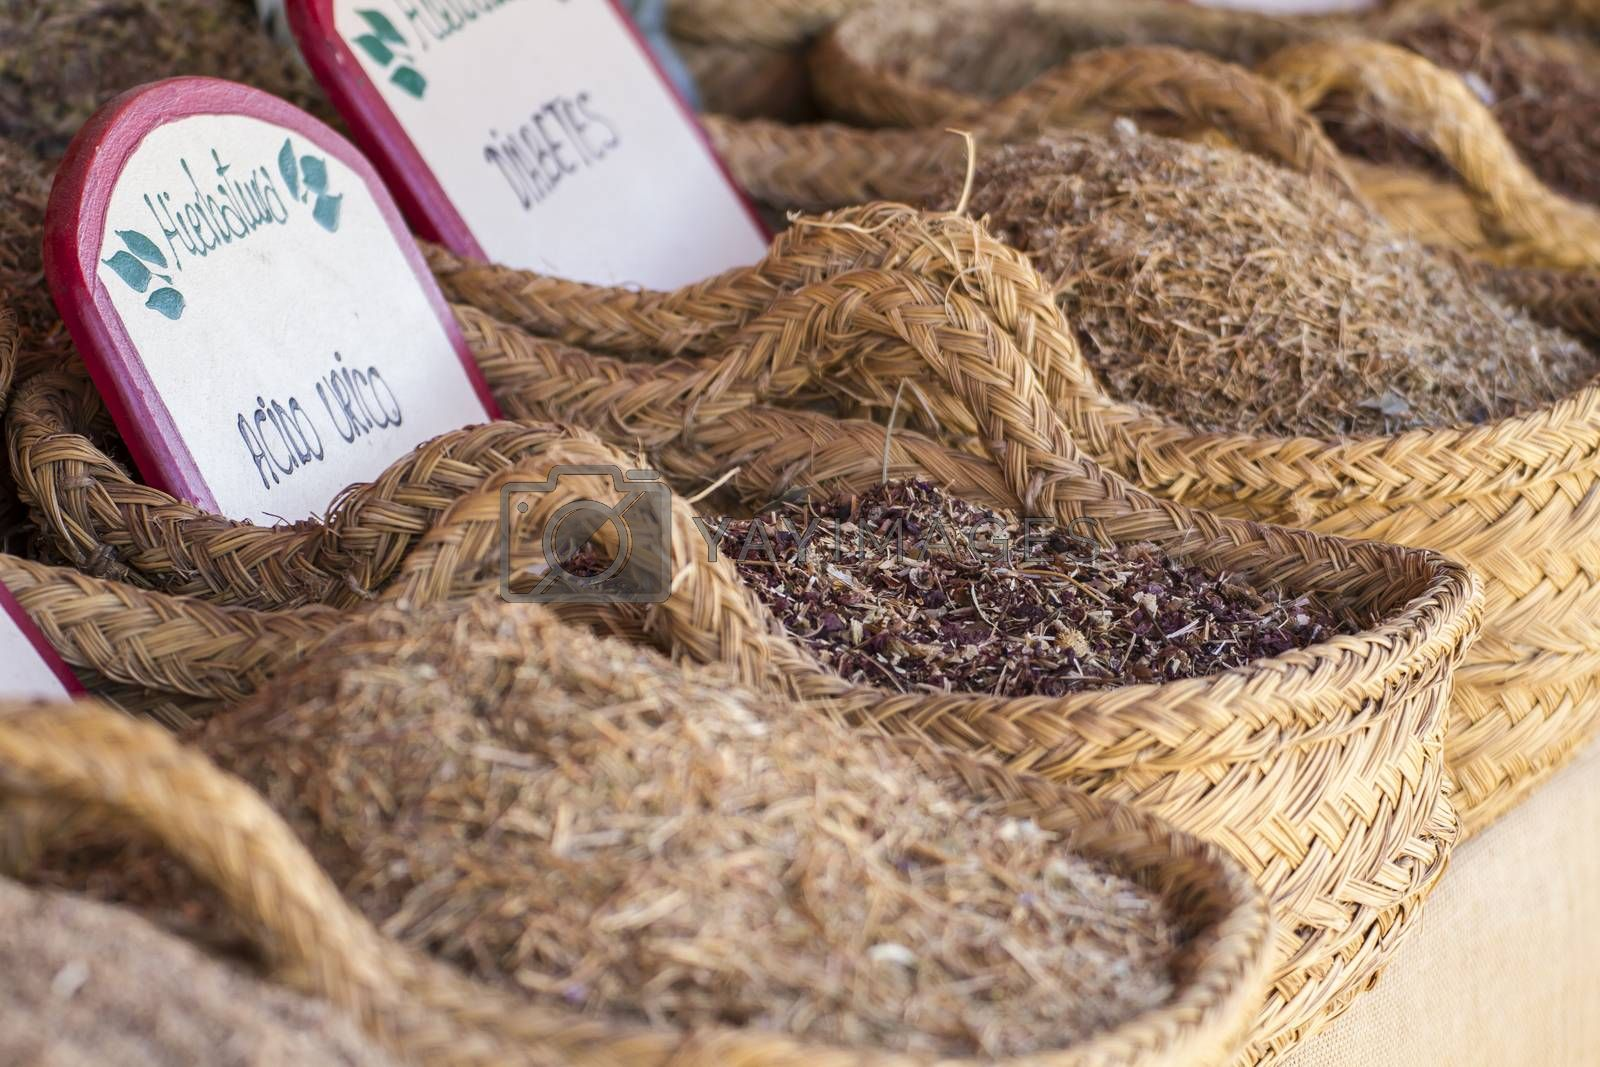 Medical, wicker baskets stuffed medicinal healing herbs